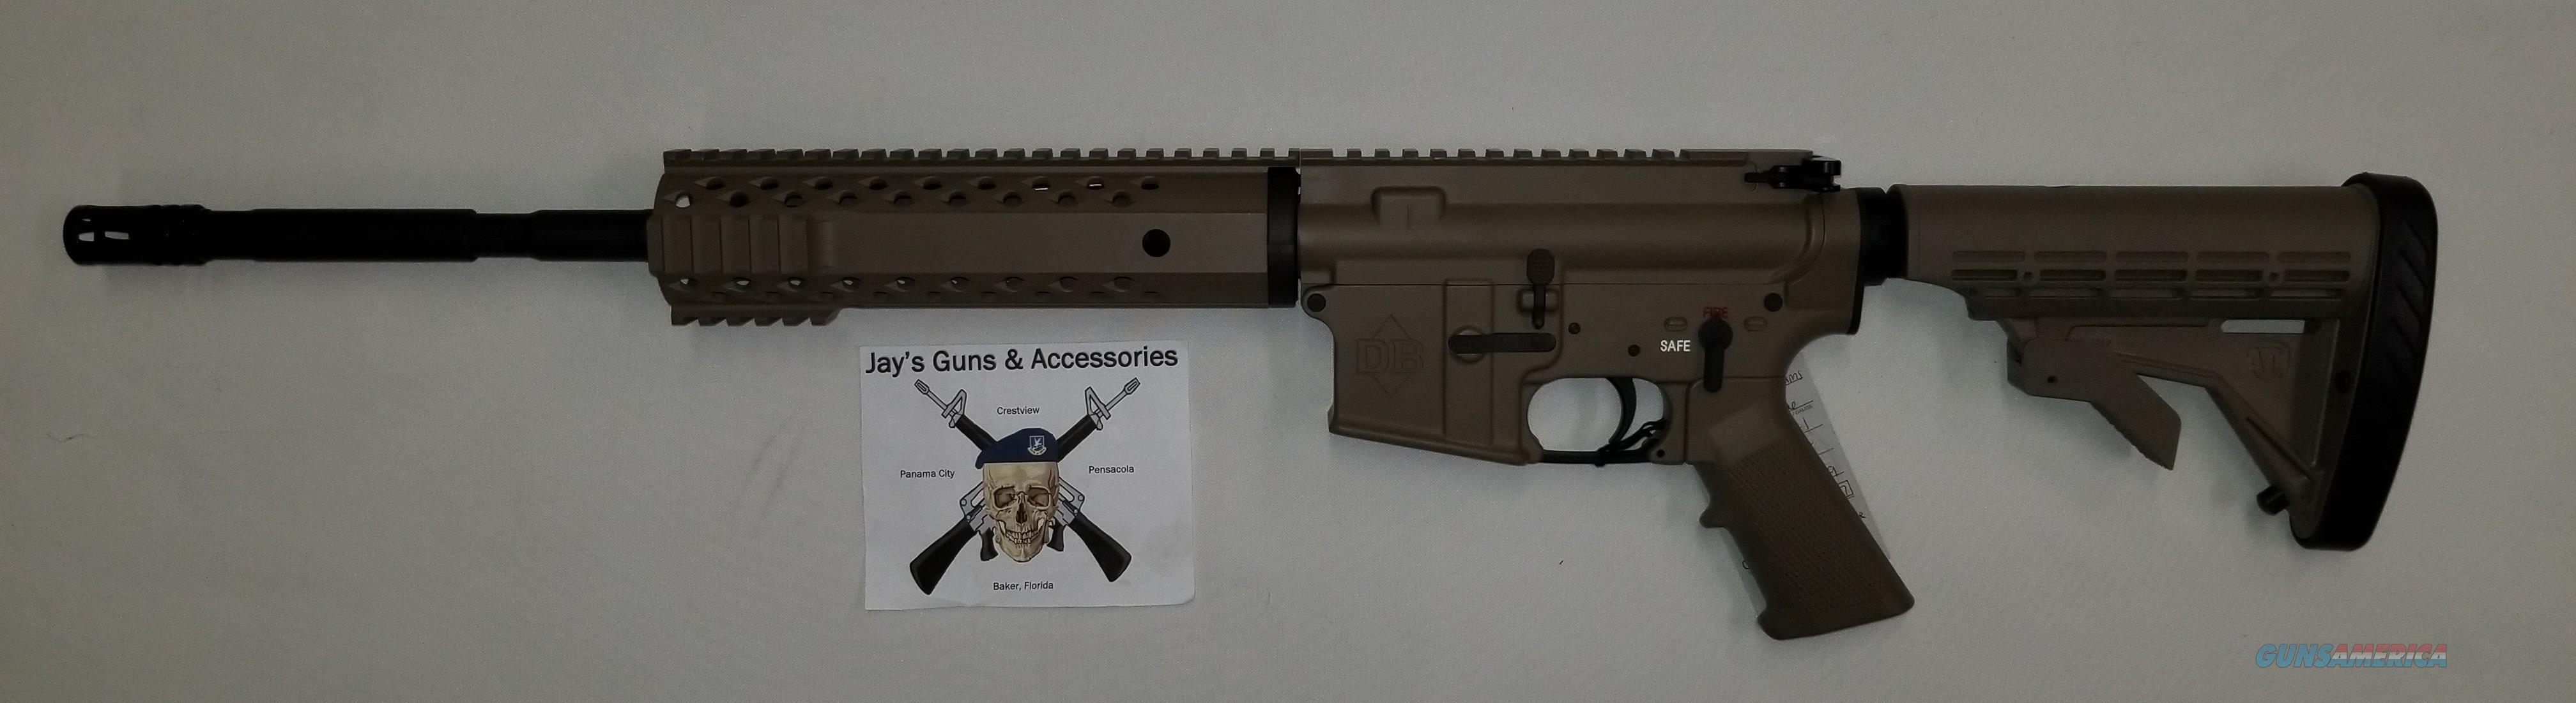 Diamondback DB-15 w/FDE Finish  Guns > Rifles > Diamondback Rifles